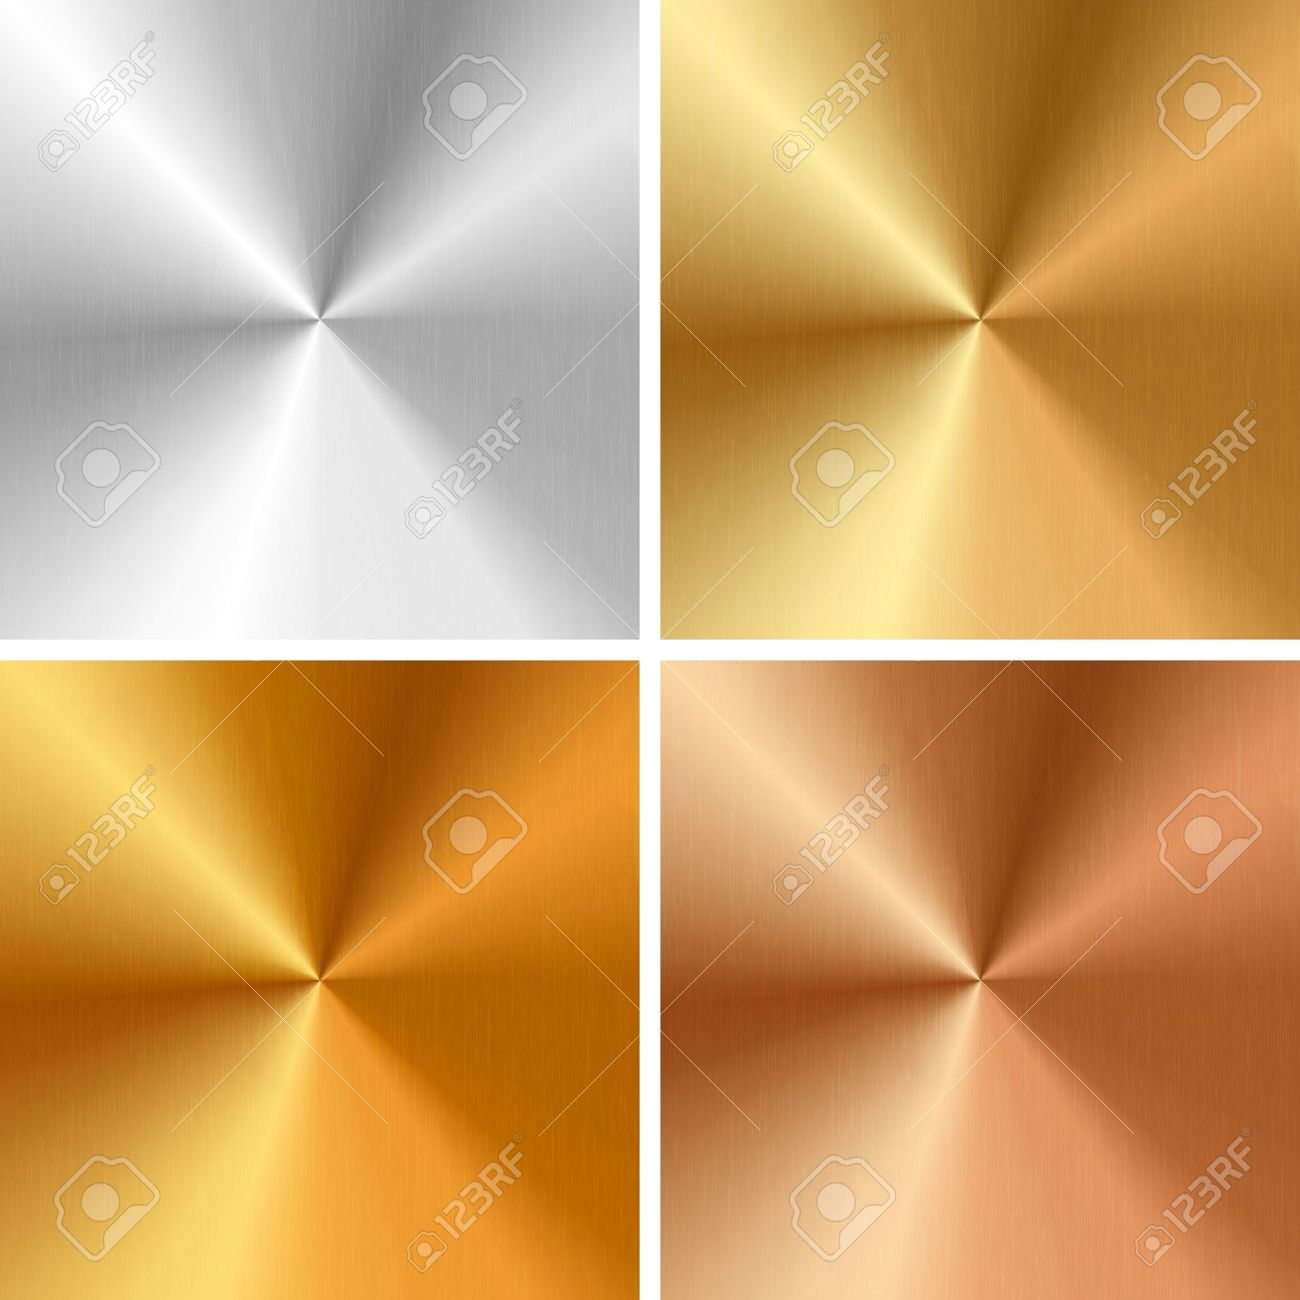 Vector metal textures - silver, gold, antique gold, bronze Stock Vector - 21773771